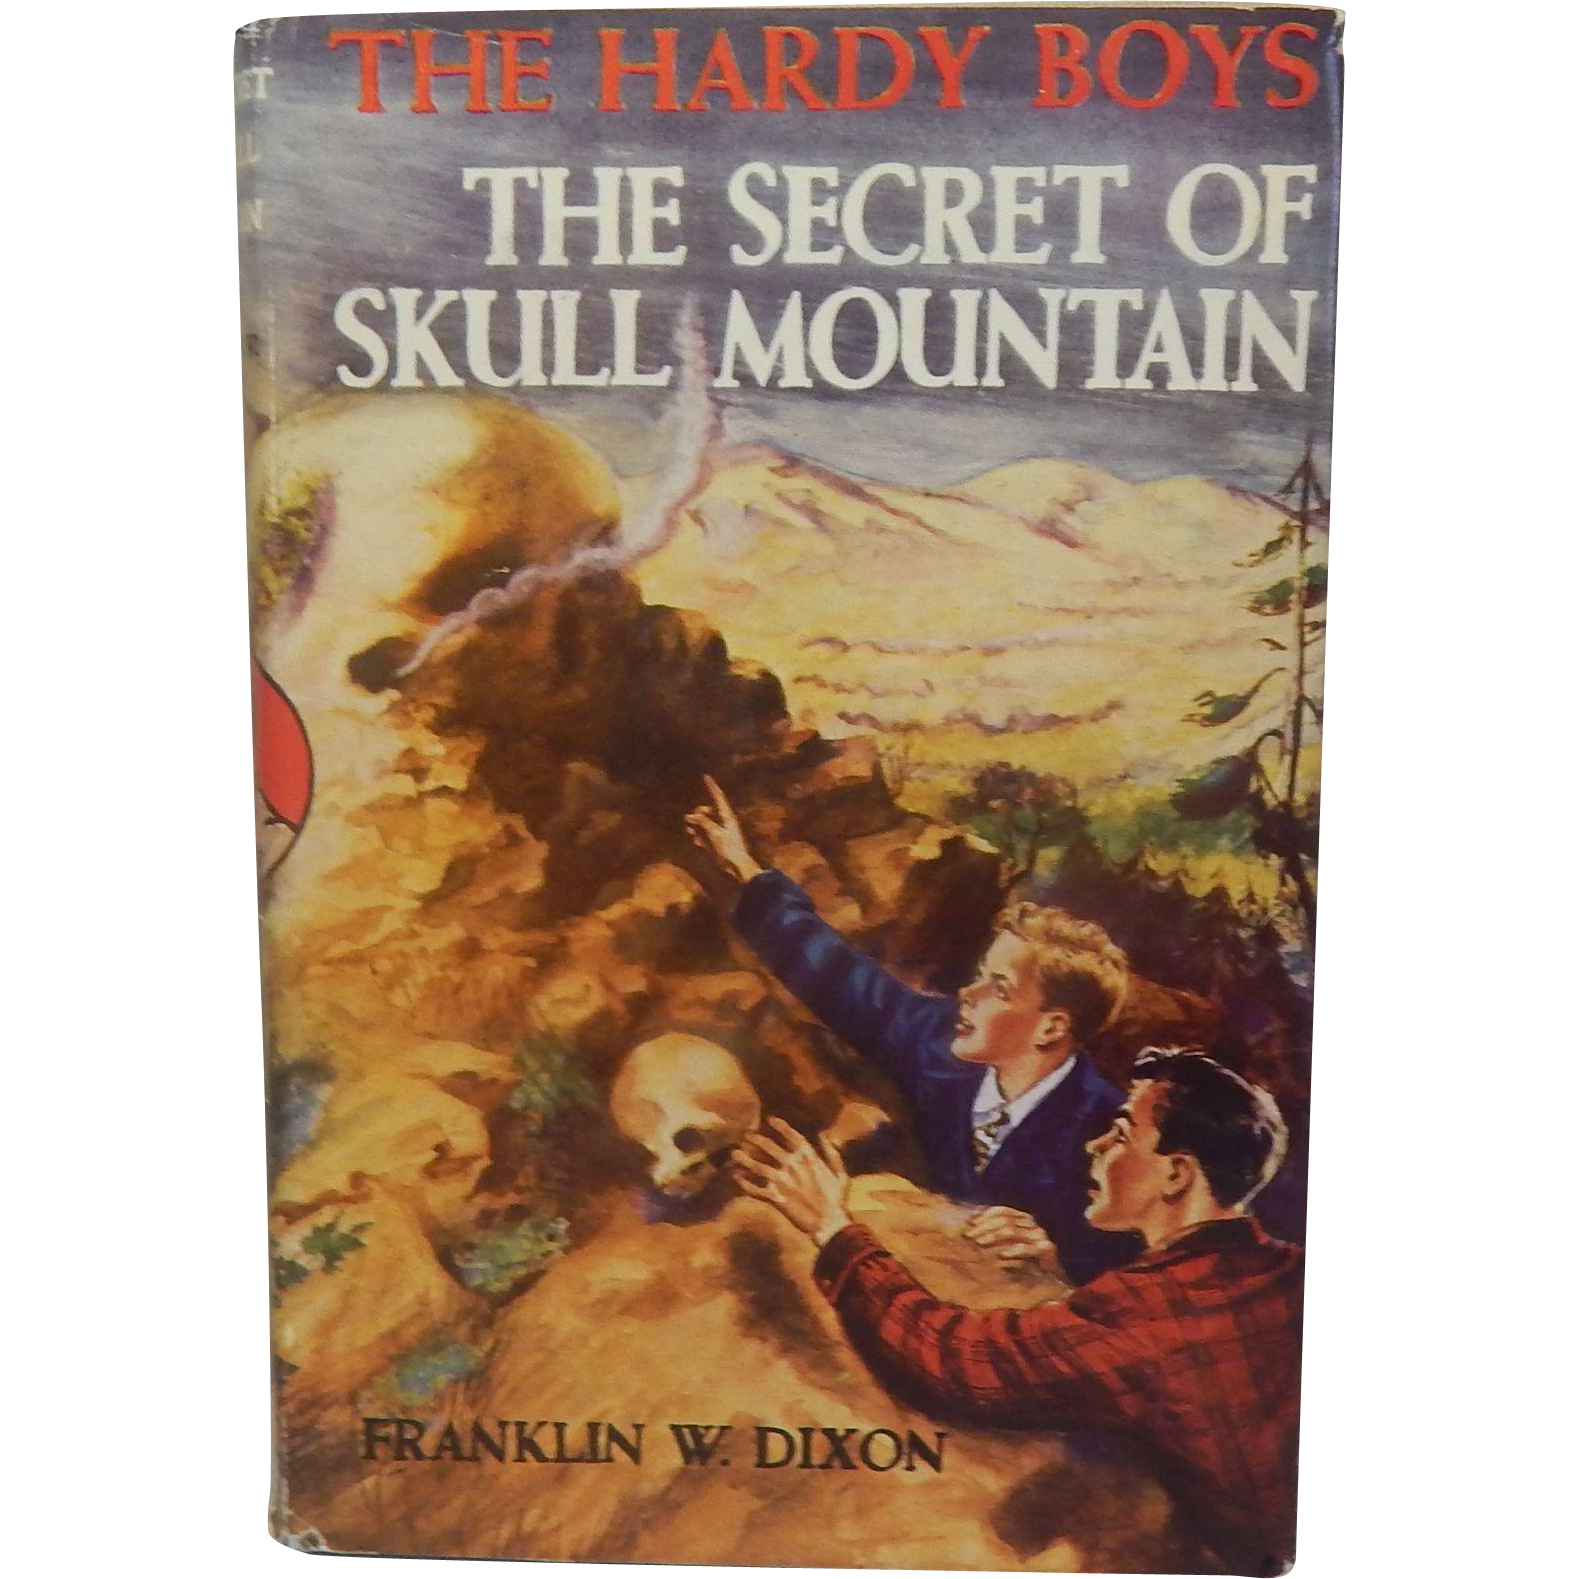 The Hardy Boys The Secret Of Skull Mountain #27